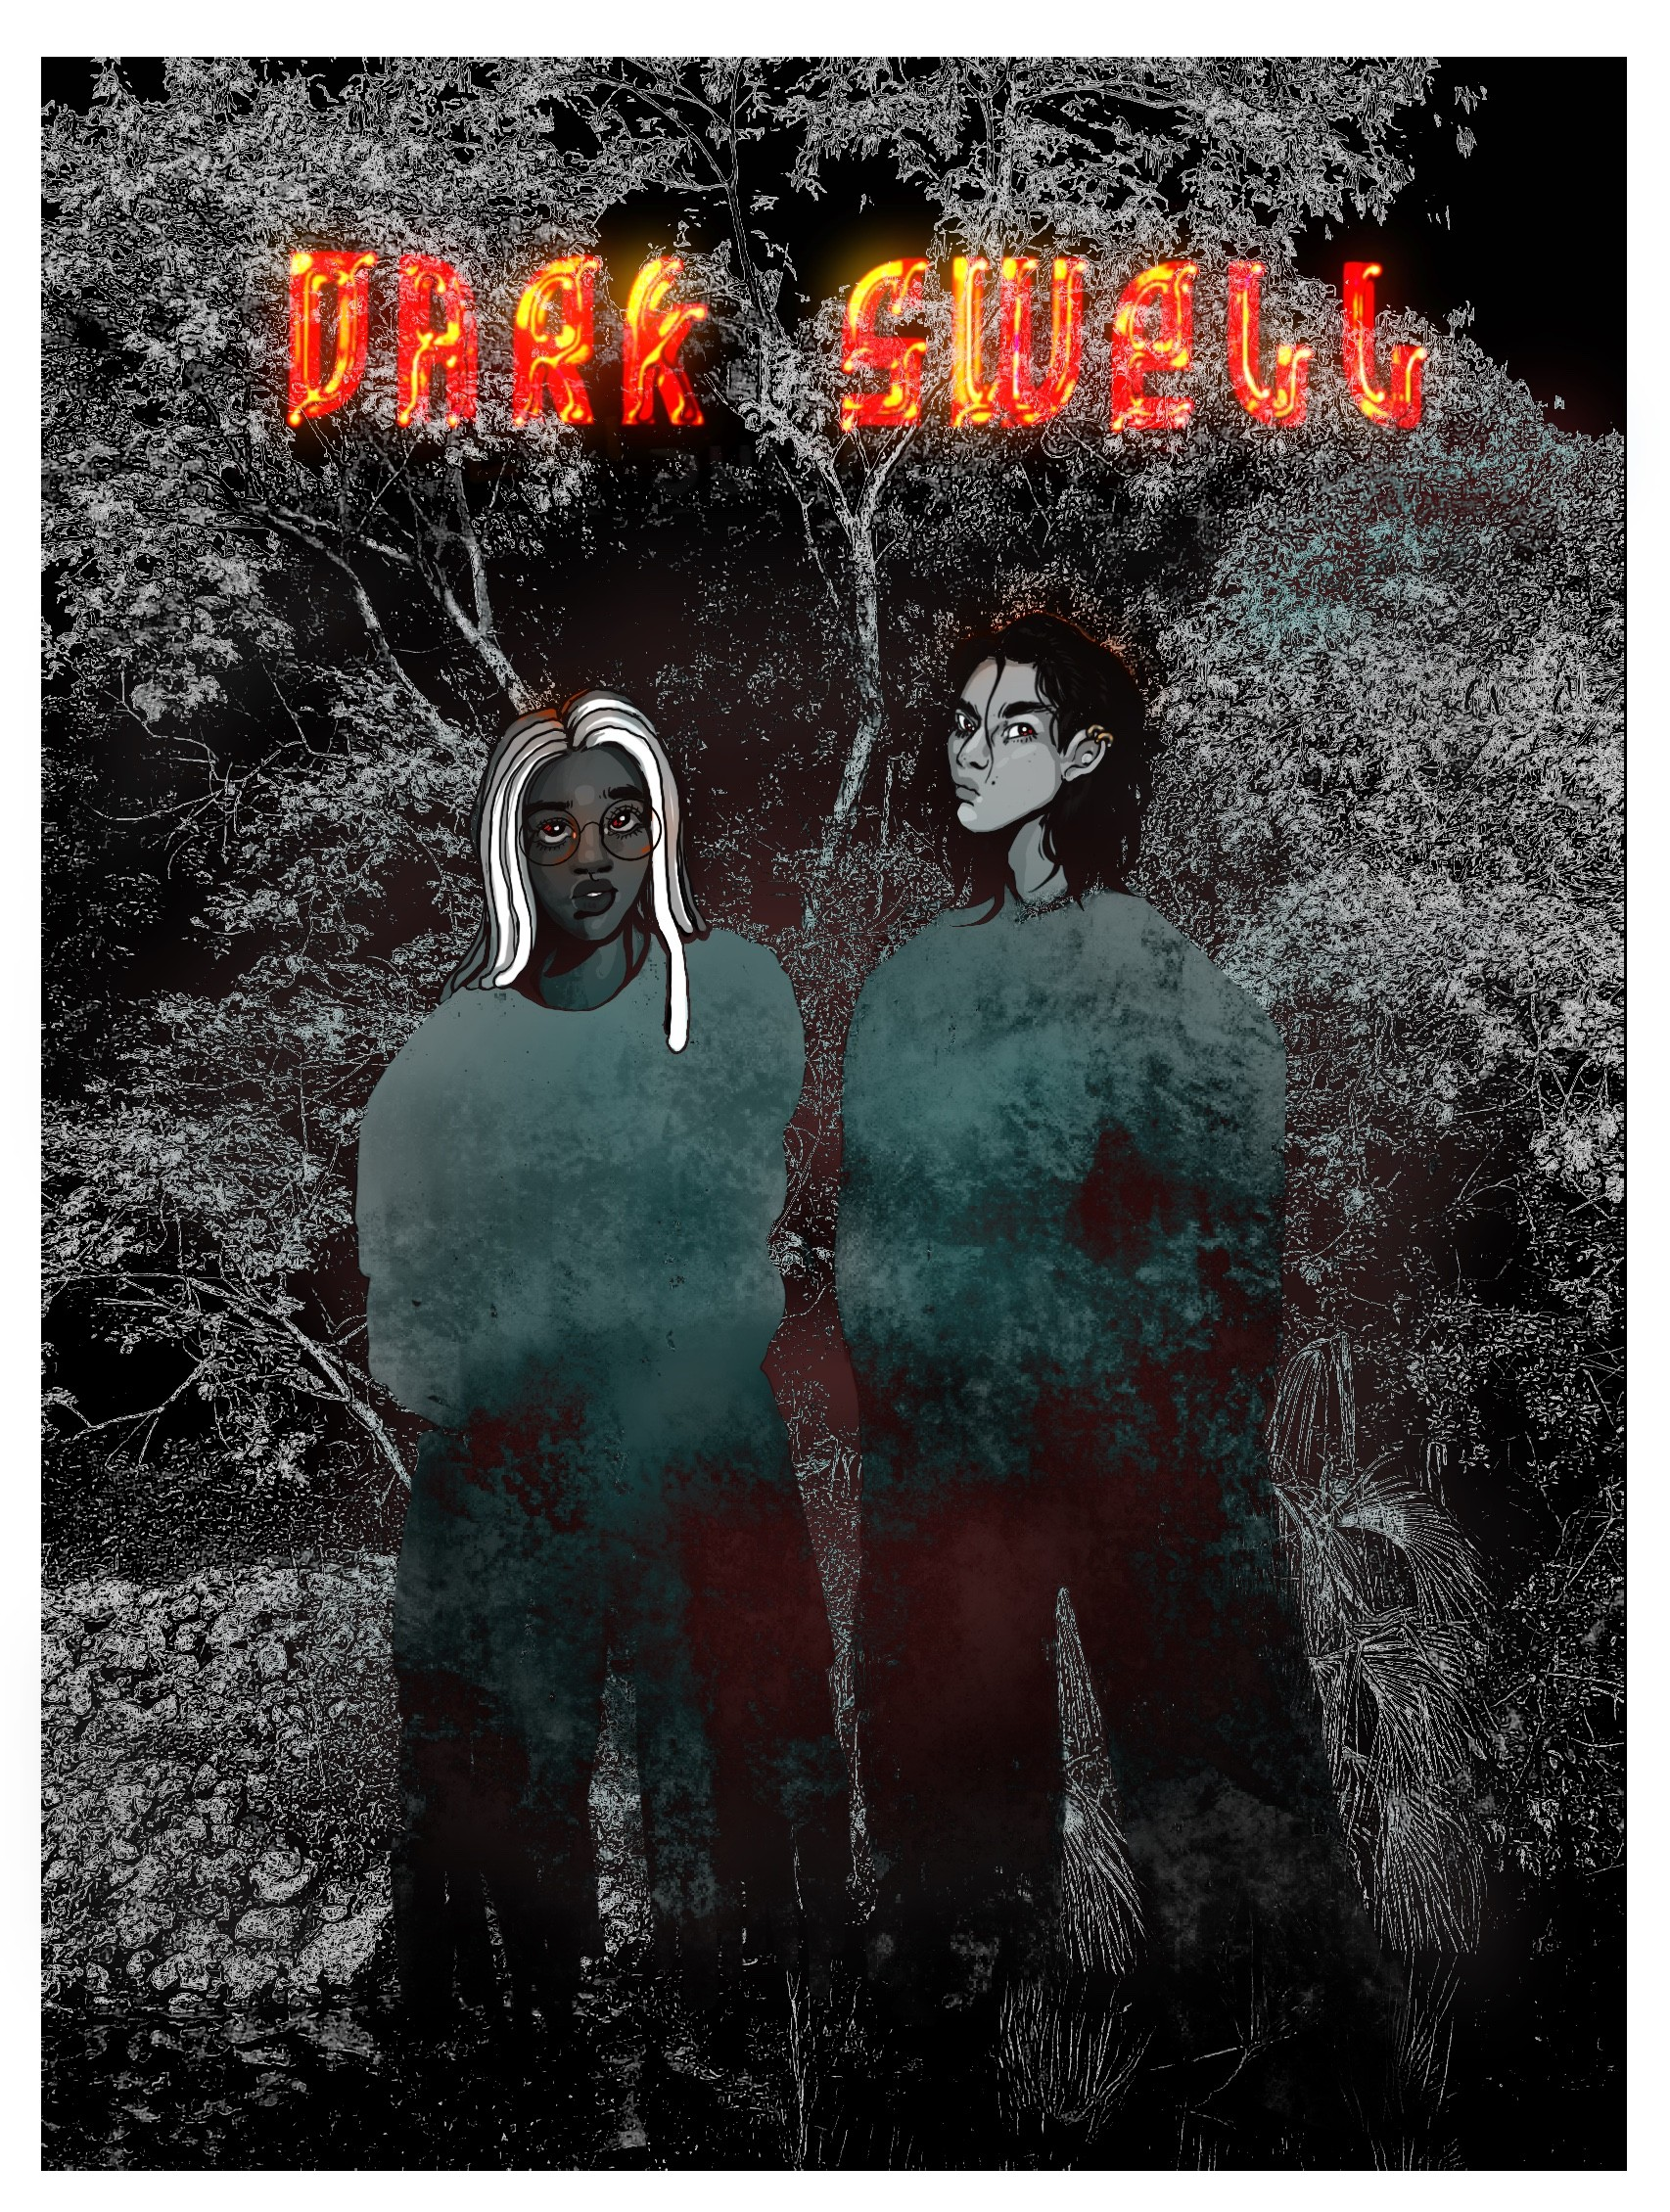 black and white comic cover of two young people, one with dreadlocks and the other with long black hair in front a forest, with the title Dark Swell above them.